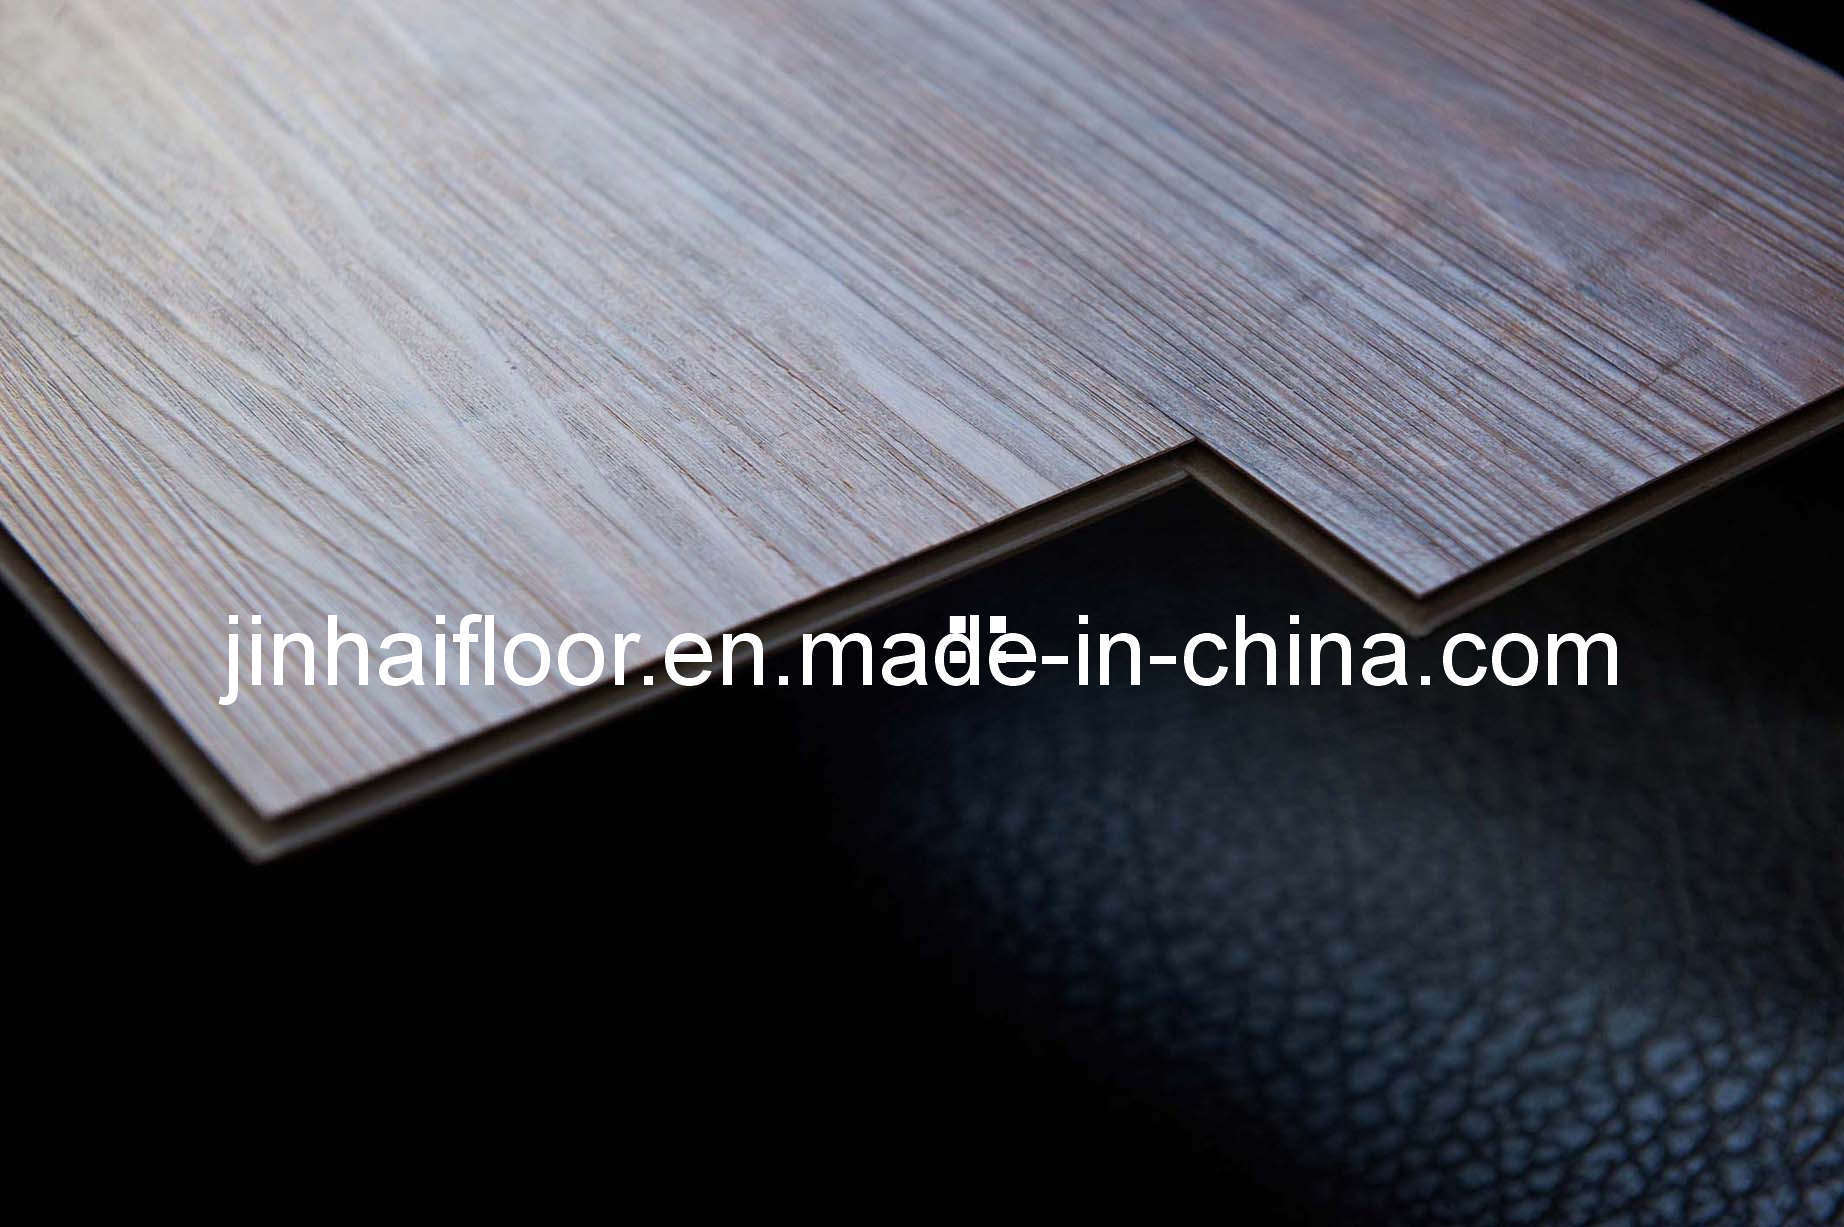 China click vinyl wood plank flooring photos pictures for Pvc wood flooring